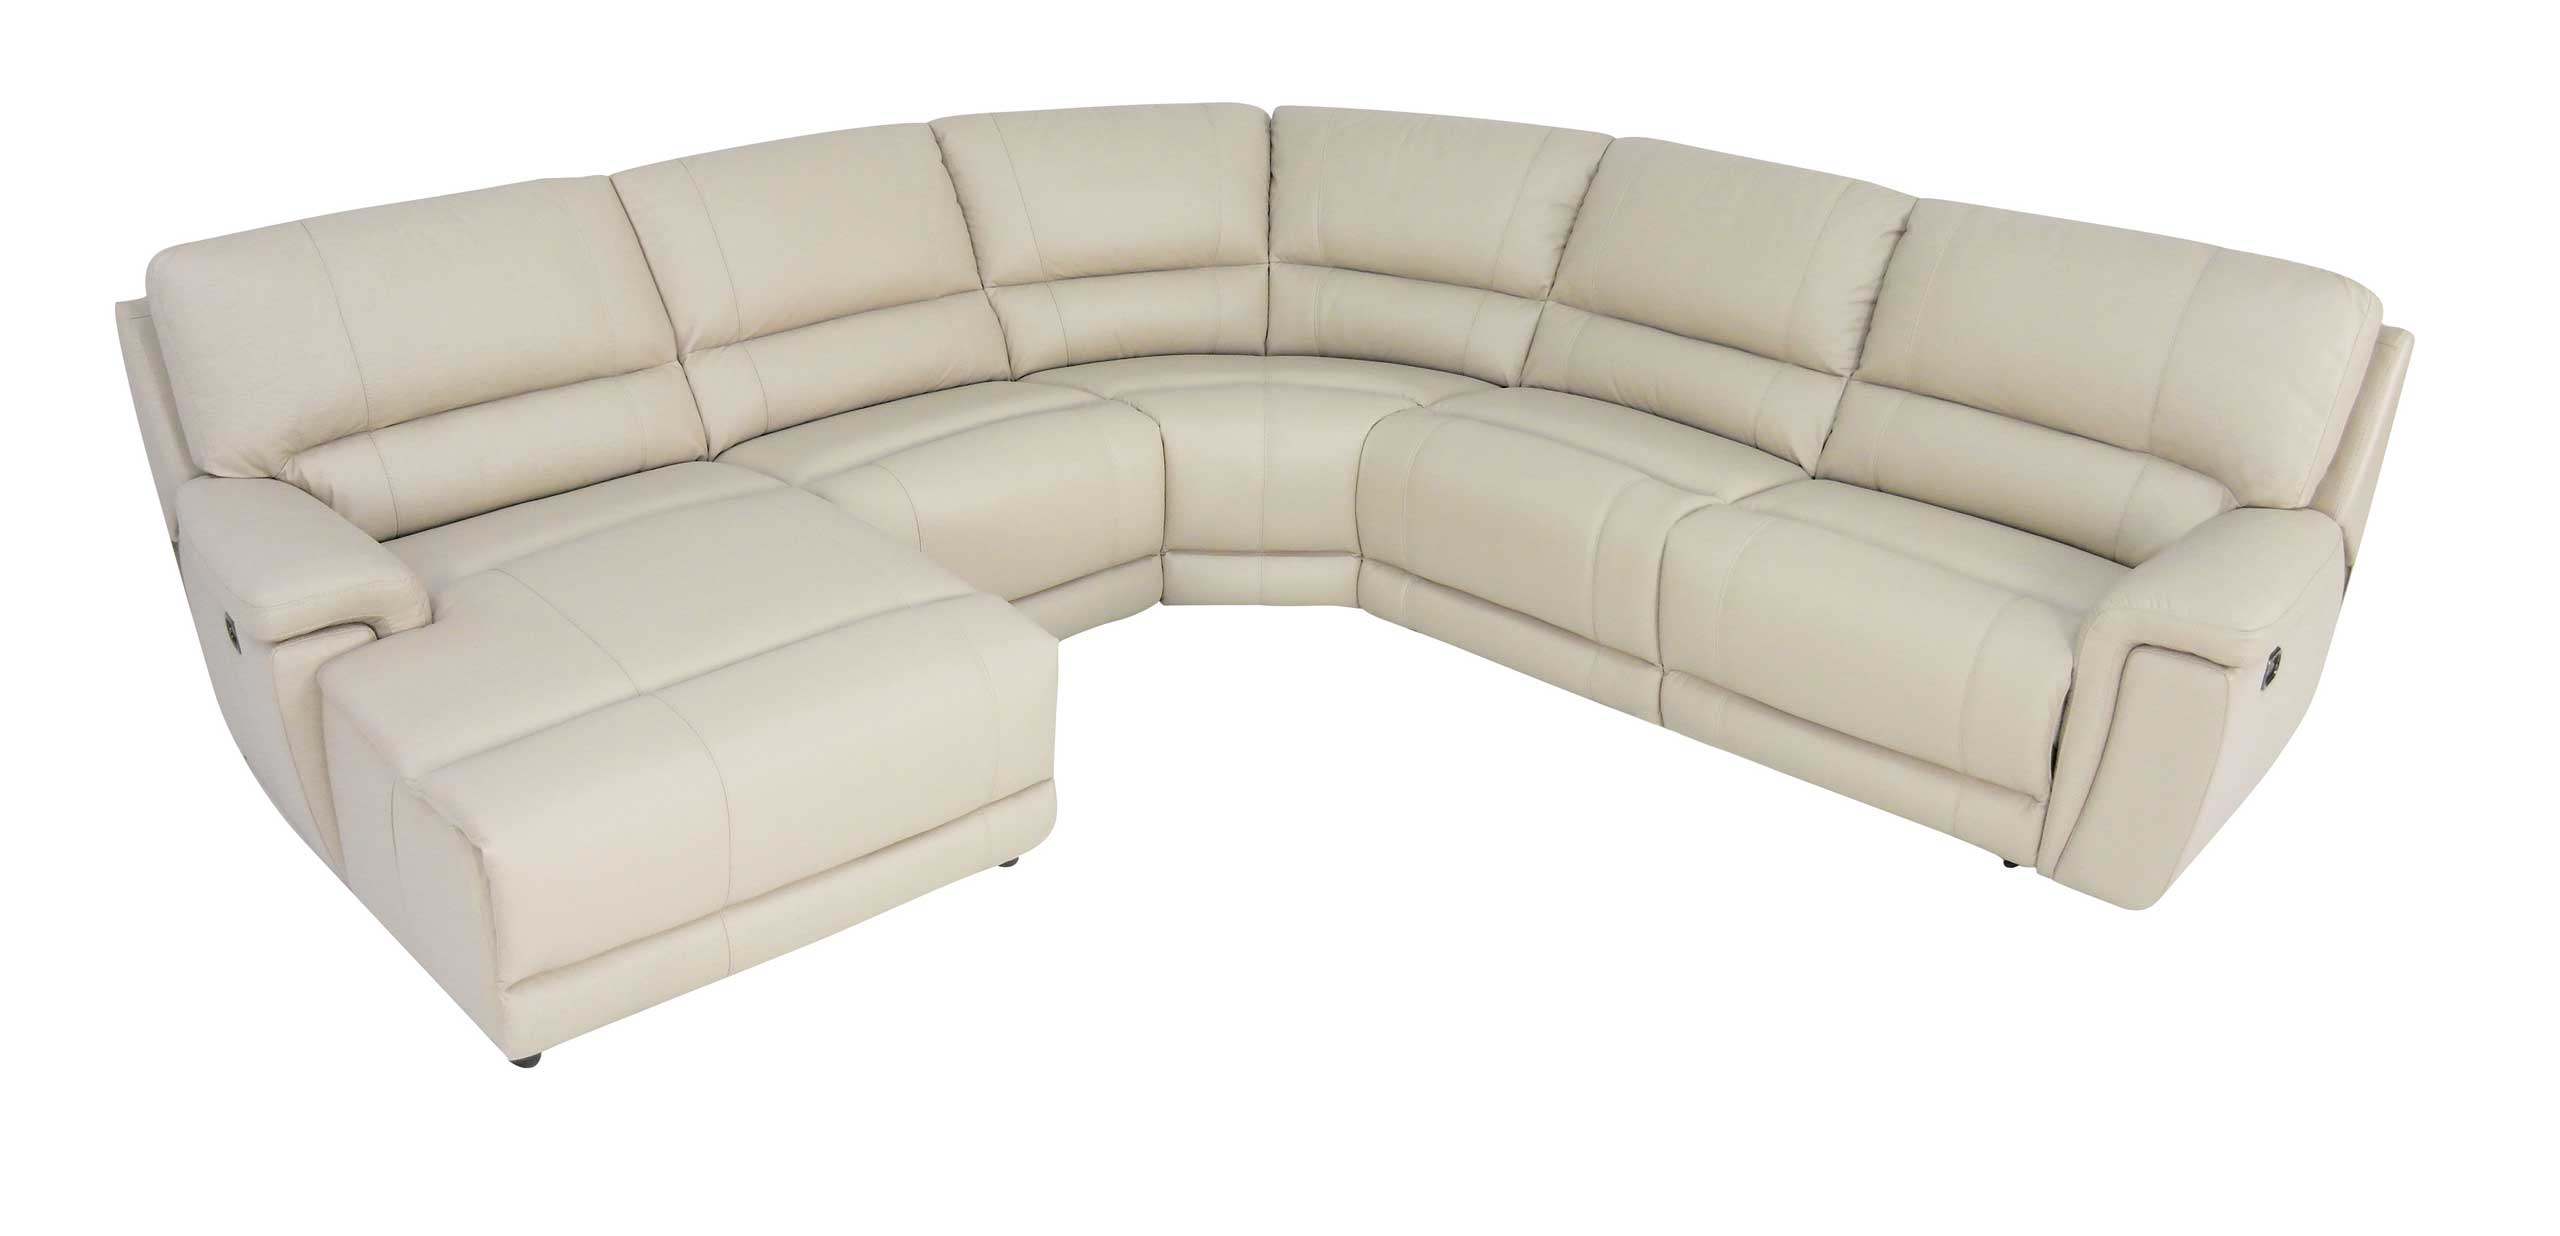 Domayne Furniture Fabric Lounges Half Yearly Sale Dining Lounge And Outdoor Furniture